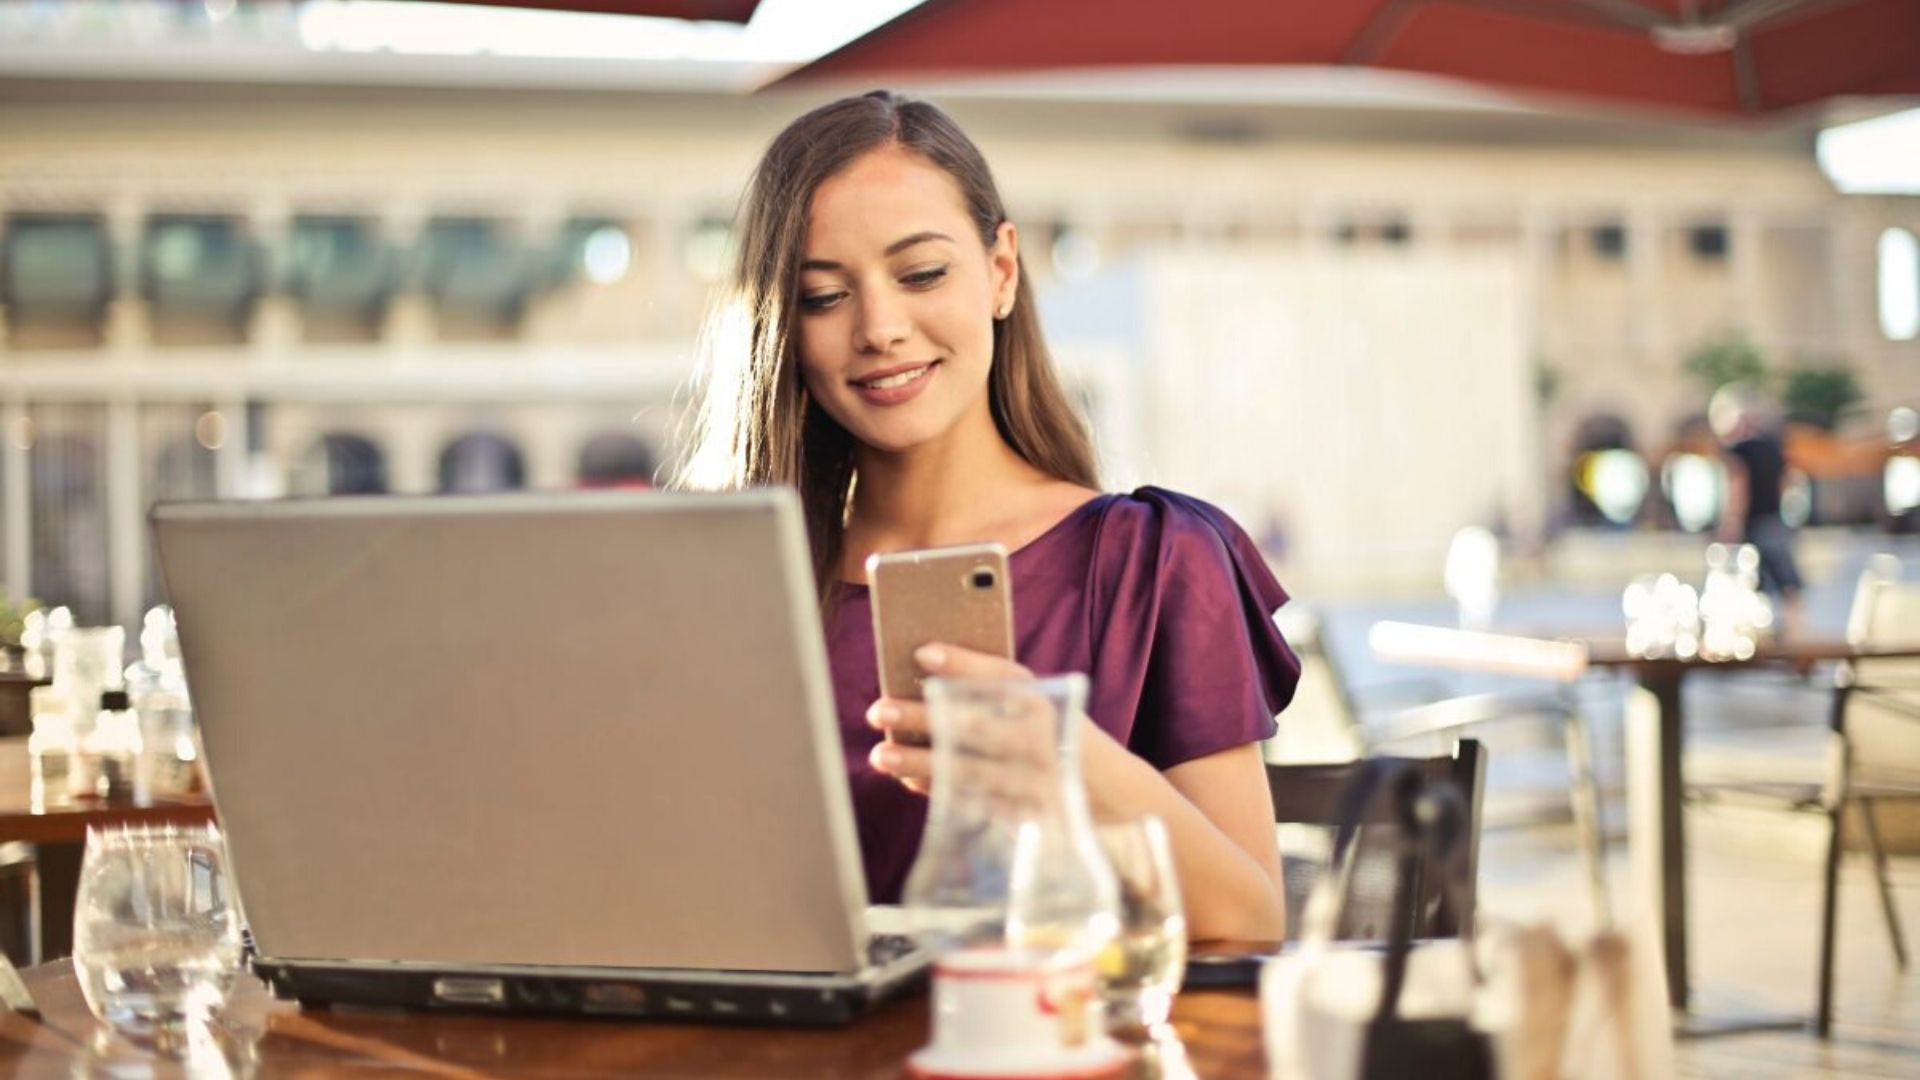 blog image - positive reviews - girl on computer at restaurant